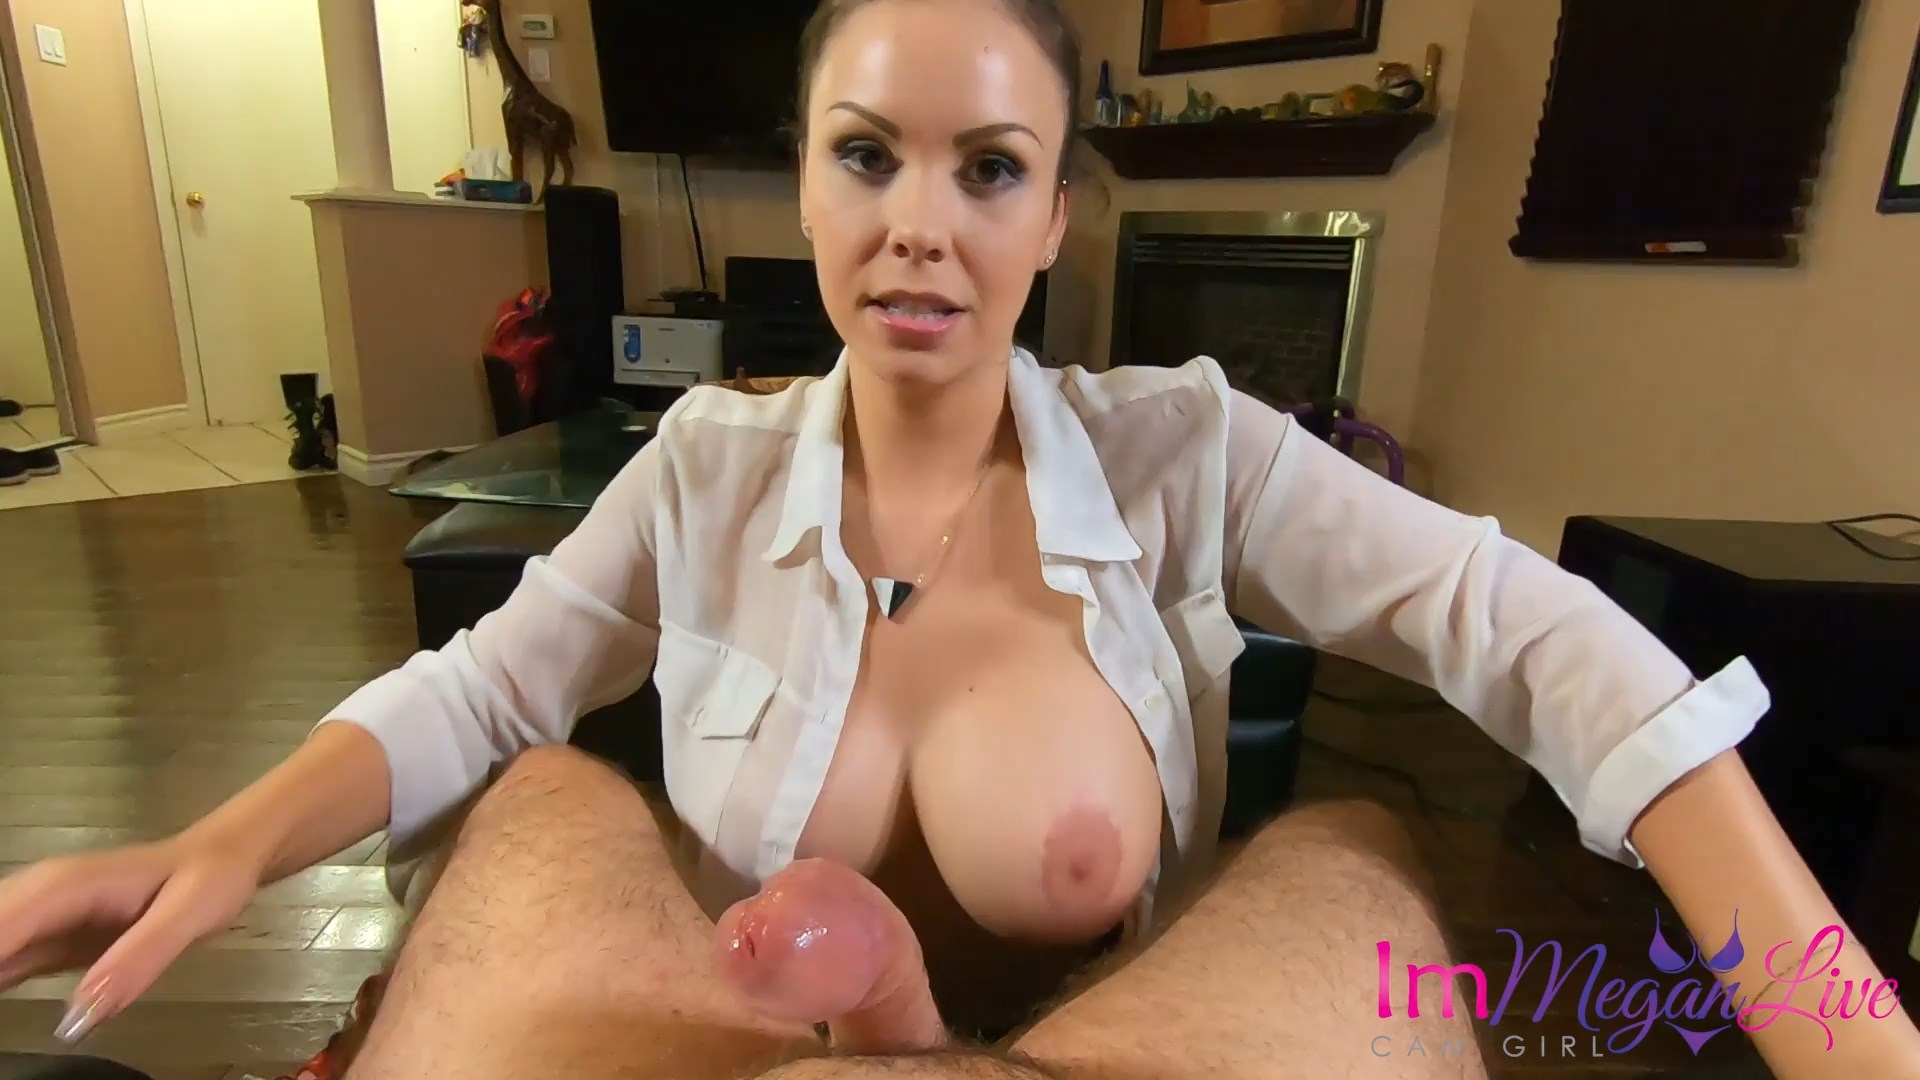 ImMeganLive - MOM HELPS SON LAST LONGER